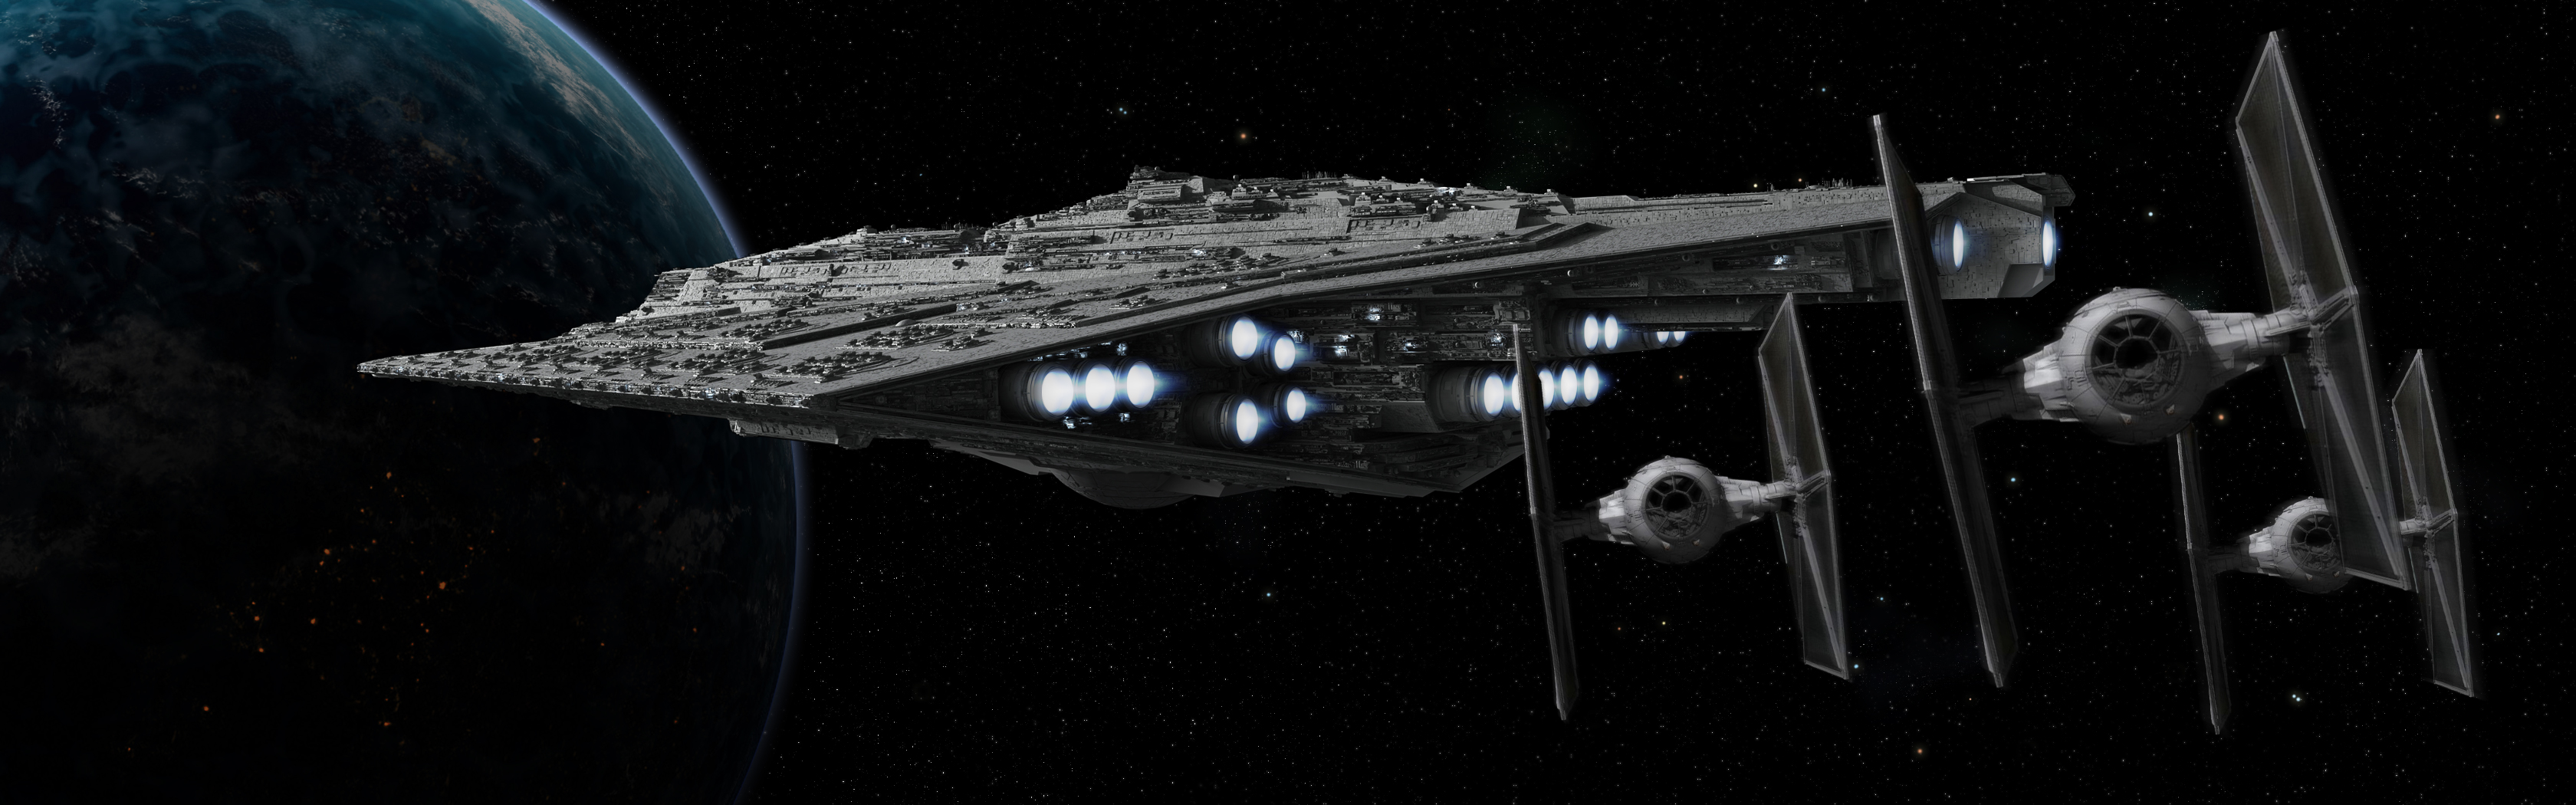 millenium falcon wallpaper hd